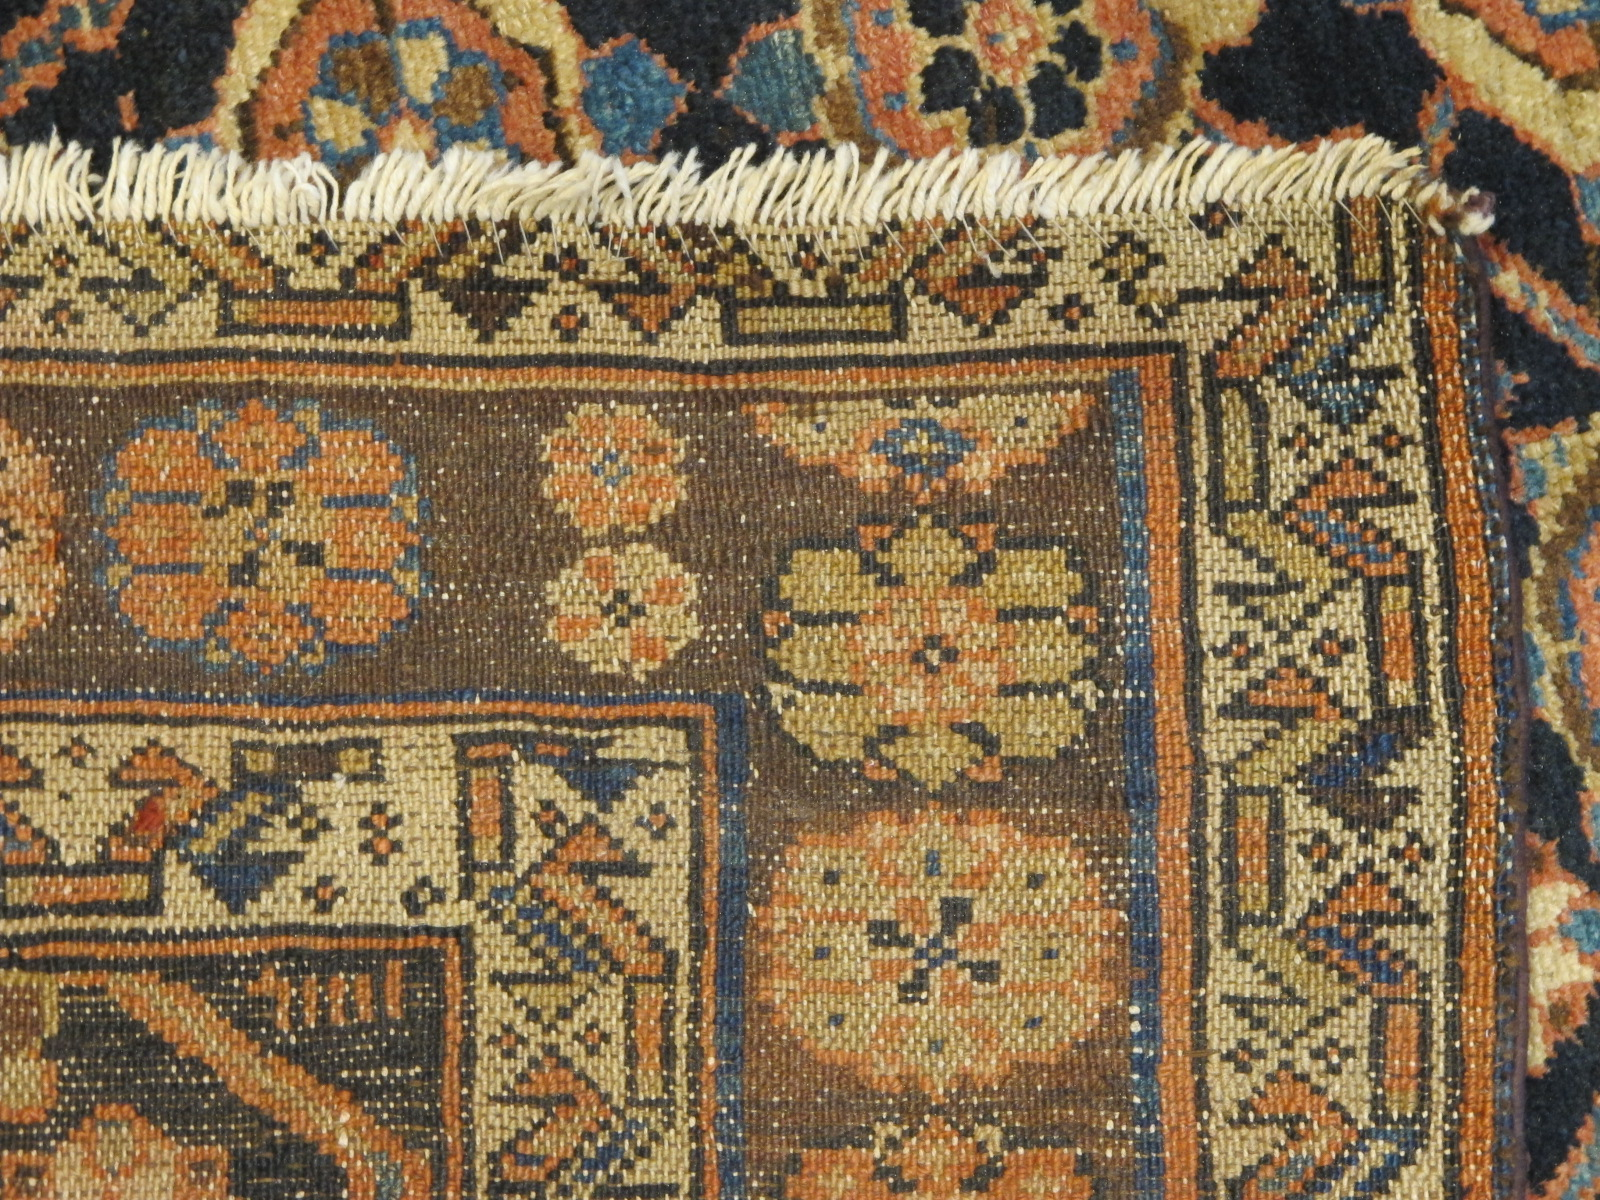 22148 Antique Persian Veramin gallery rug 5,5 x 11,2 (5)